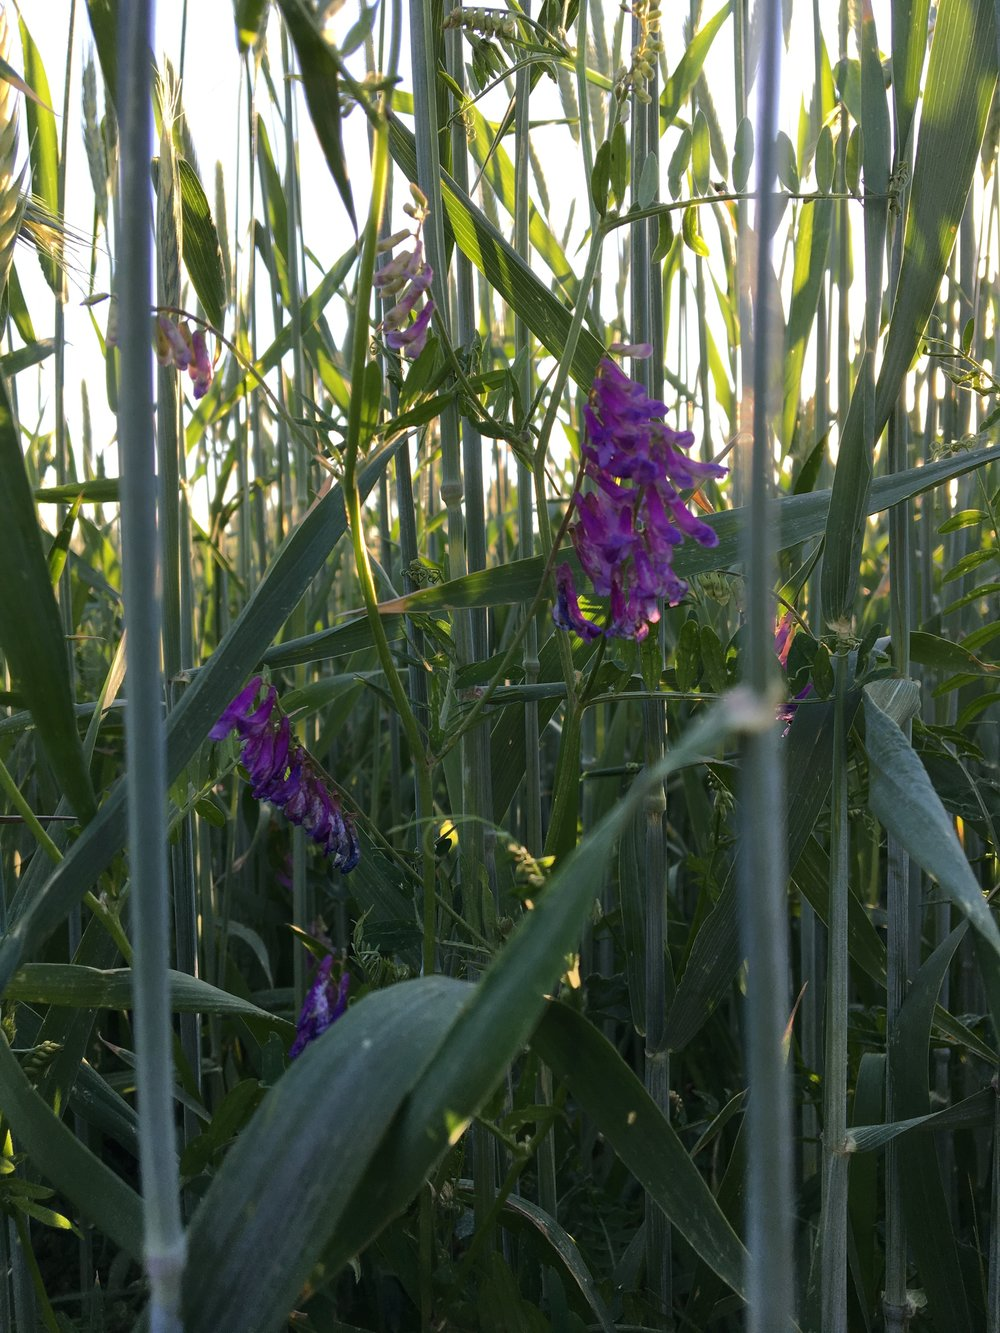 Blooming Vetch!! So gorgeous